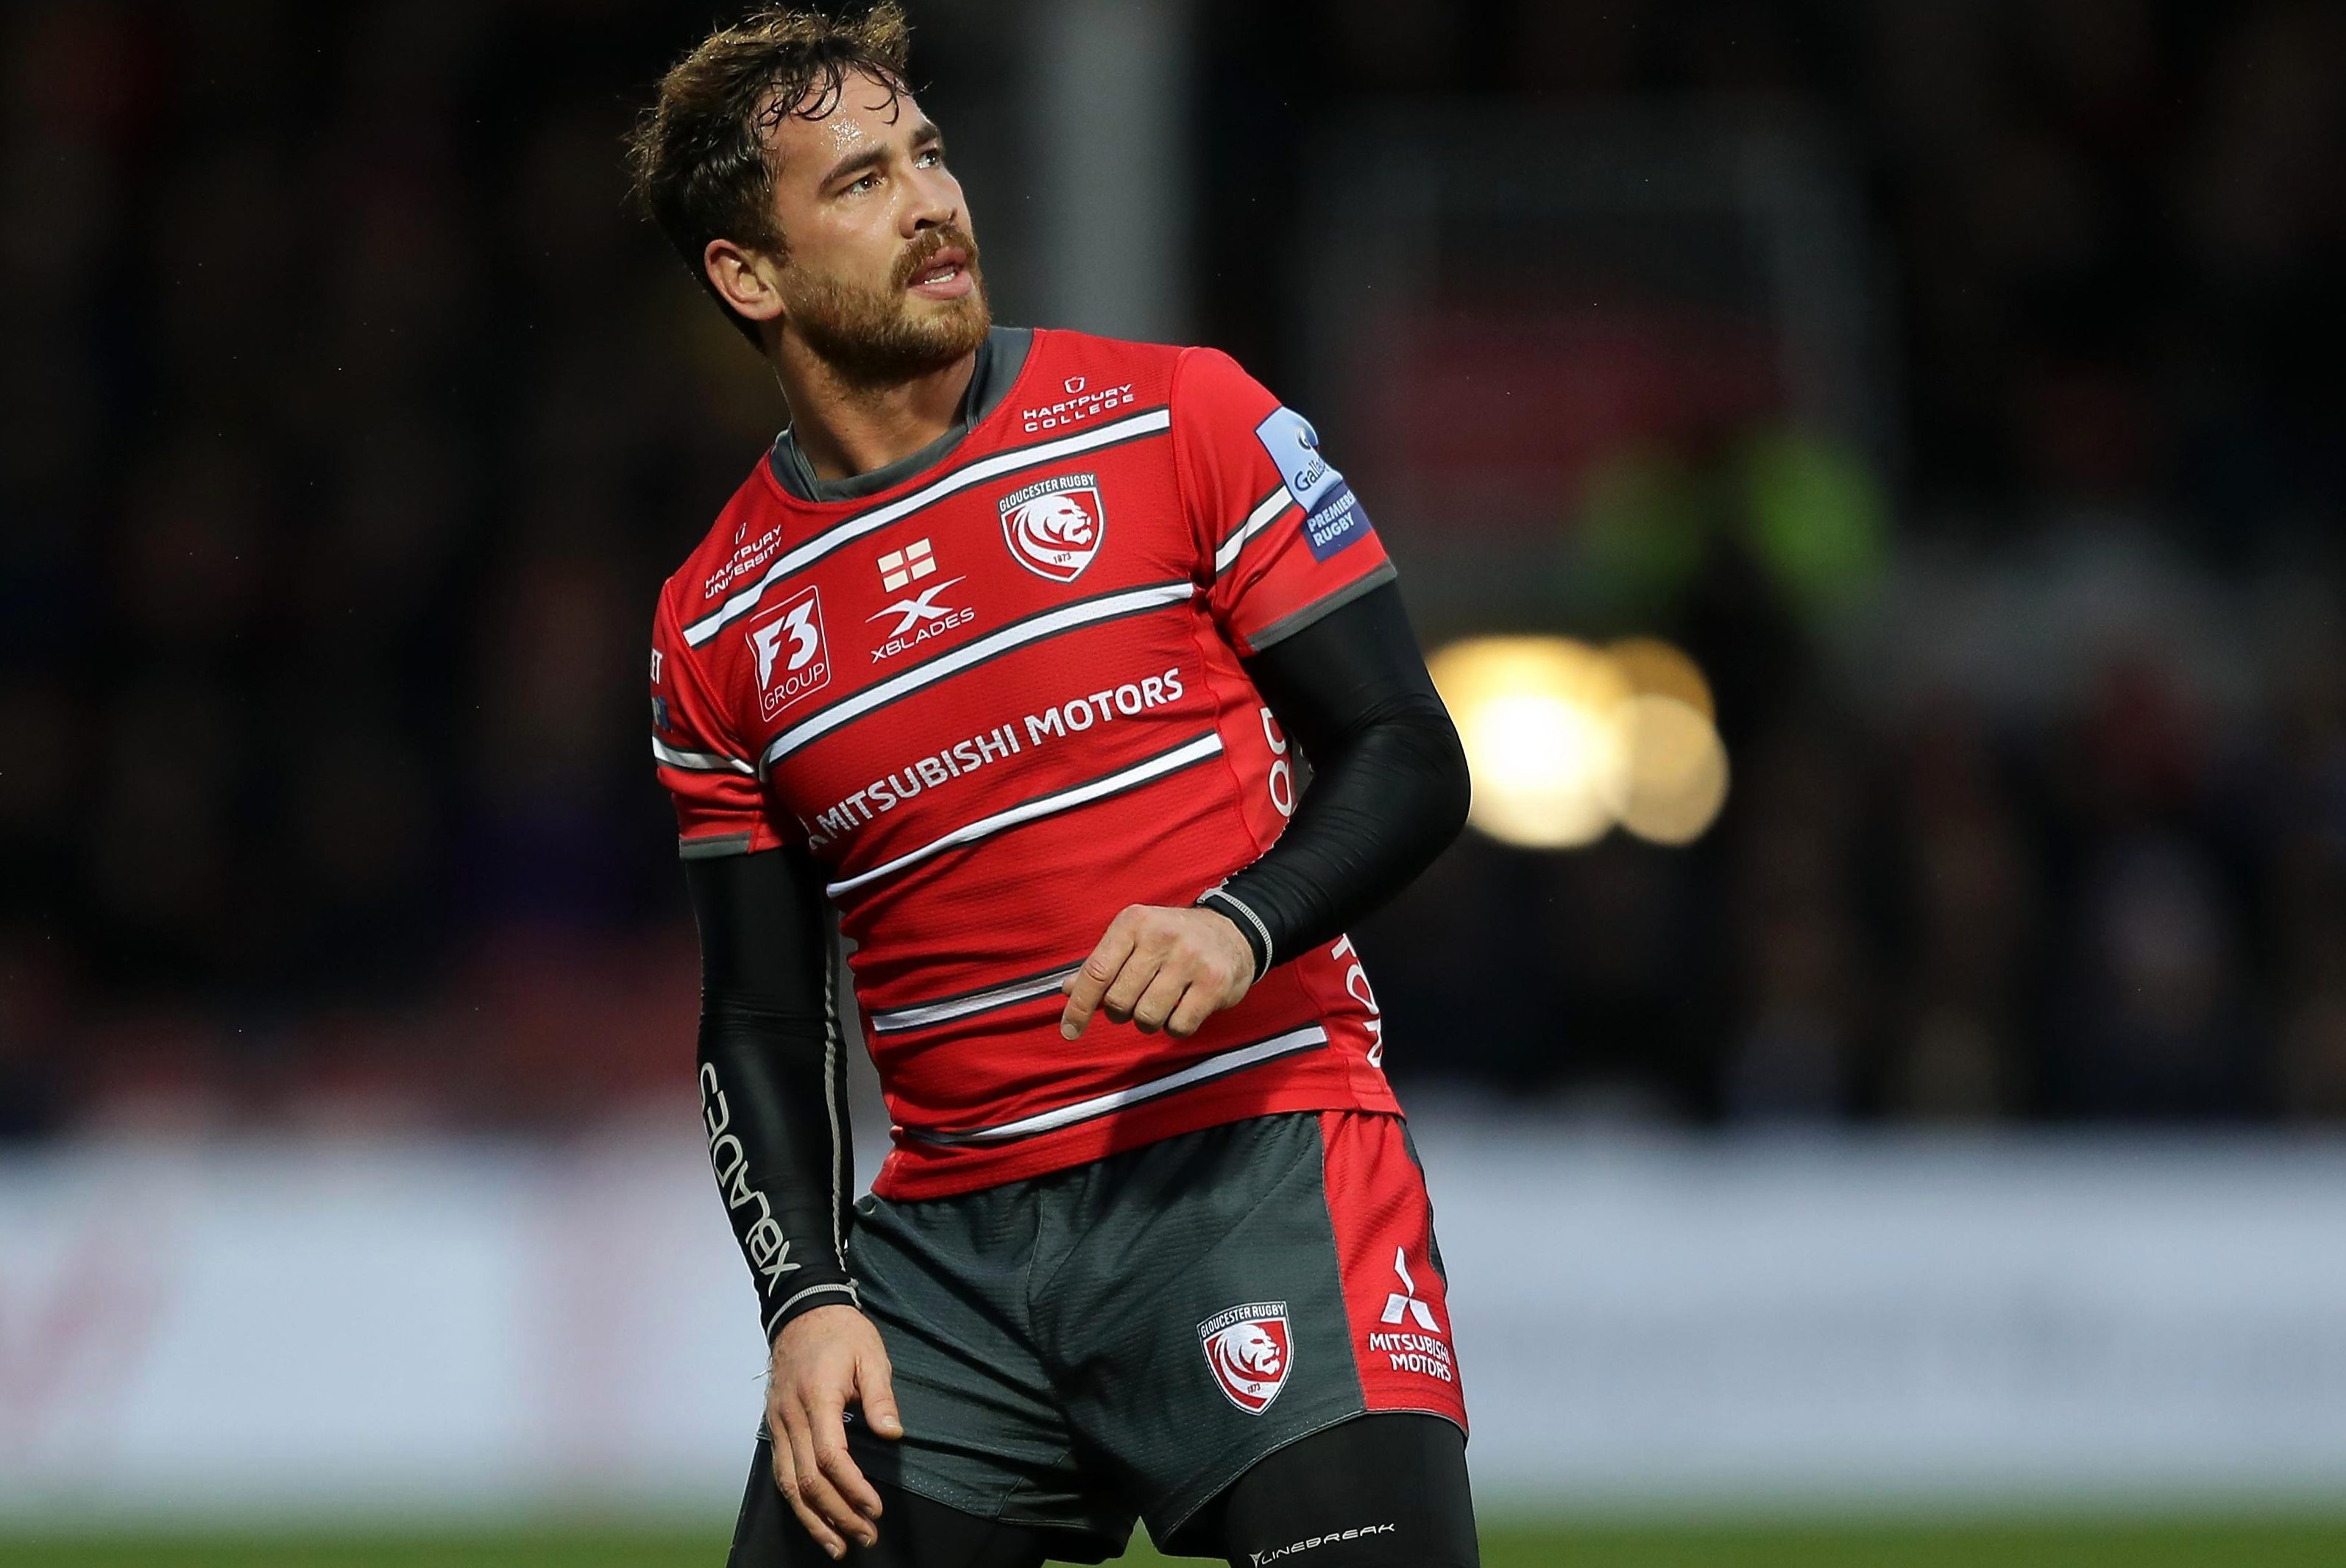 Cipriani is loved by Gloucester fans